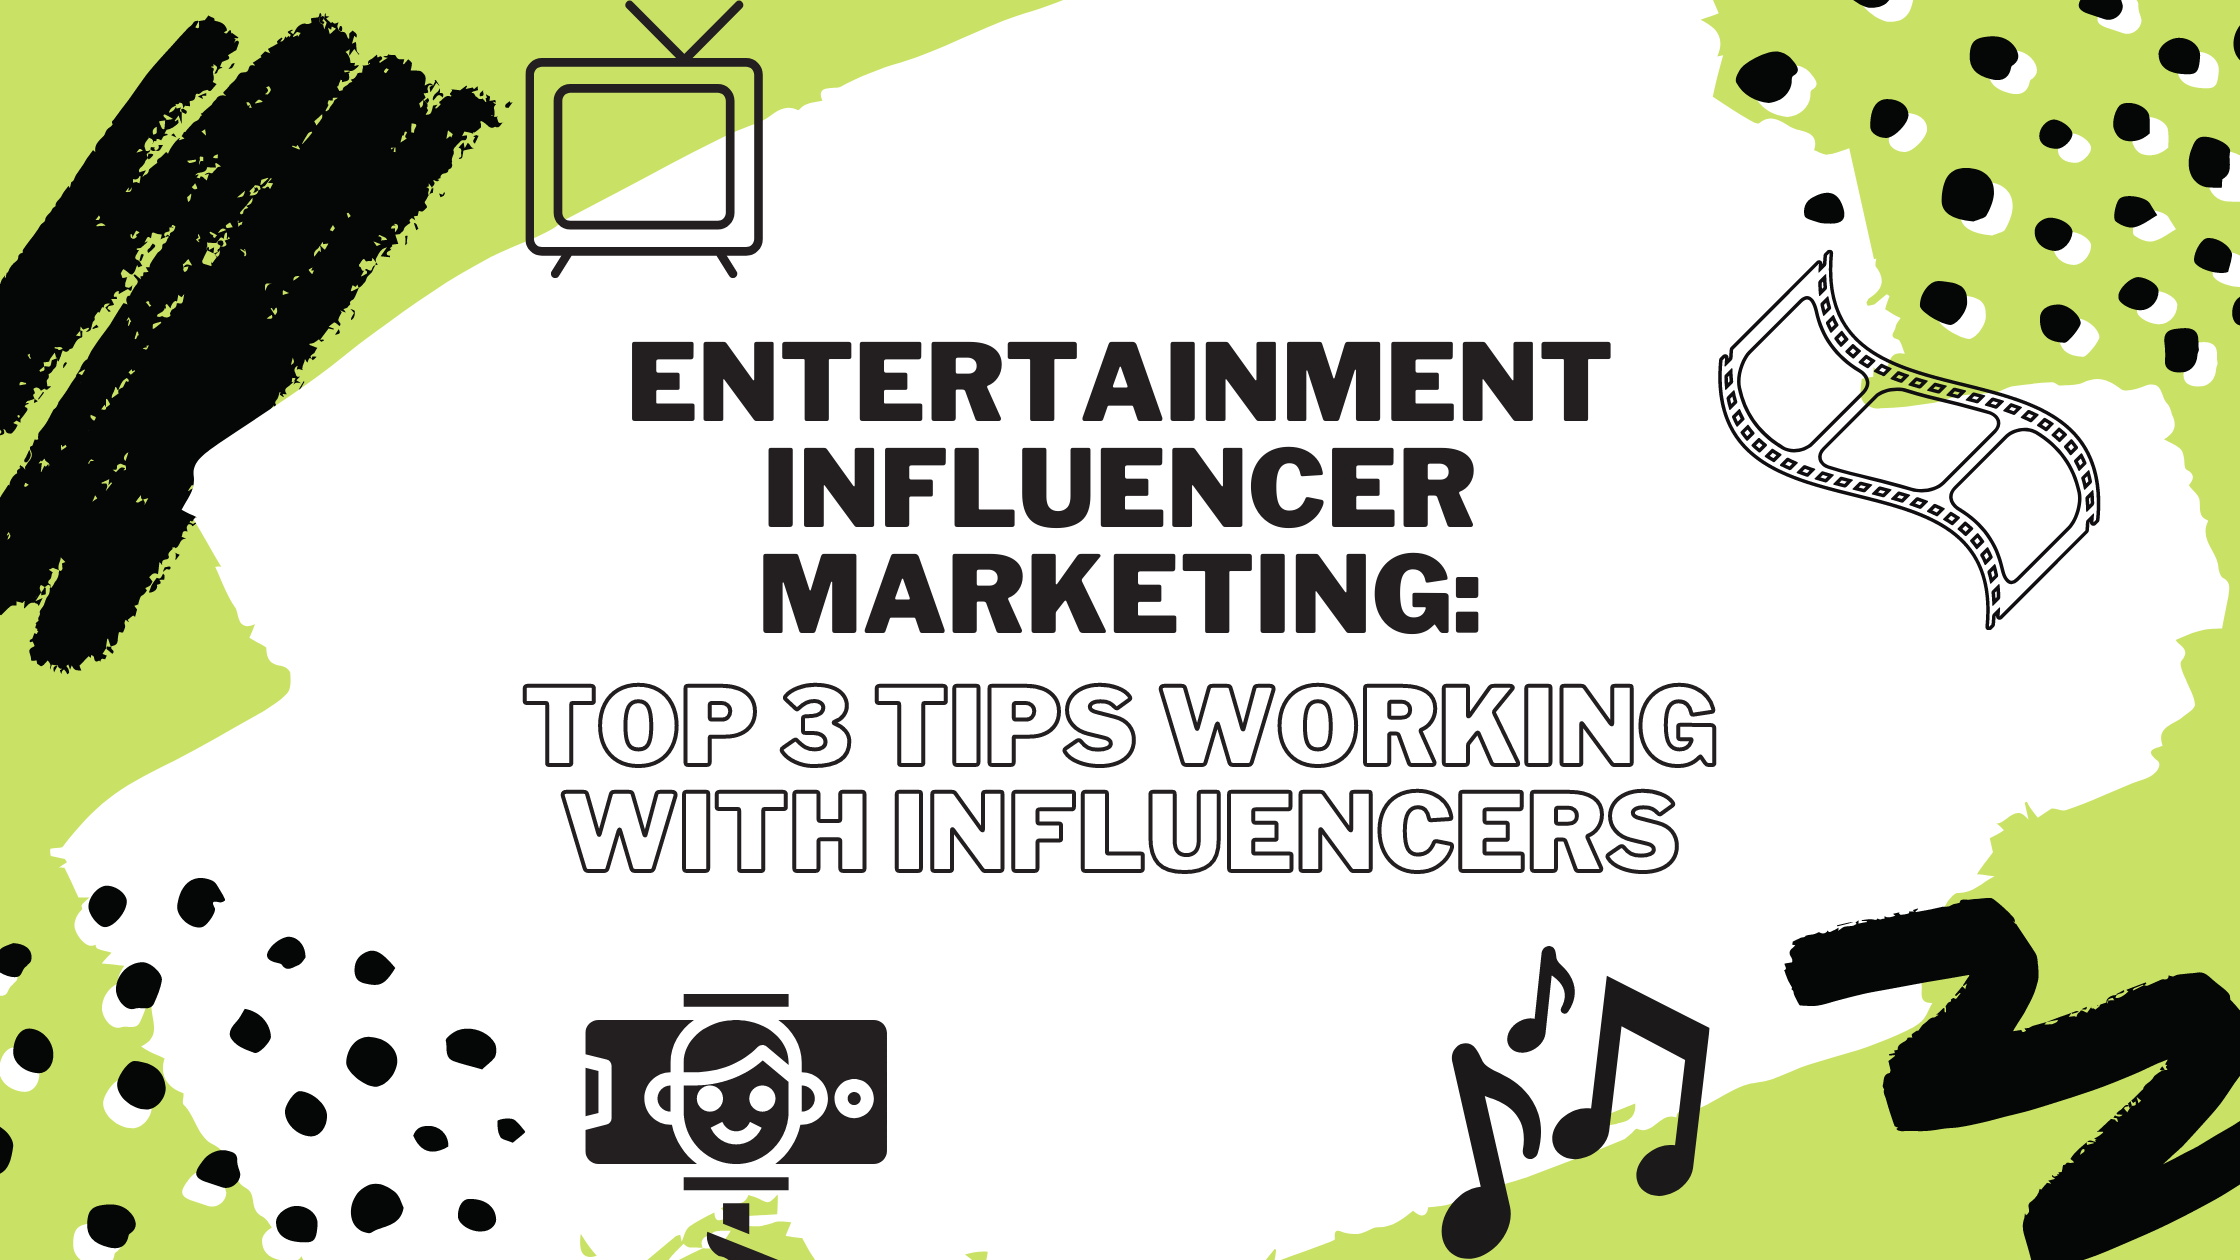 Entertainment Influencer Marketing: Top 3 Tips Working with Influencers